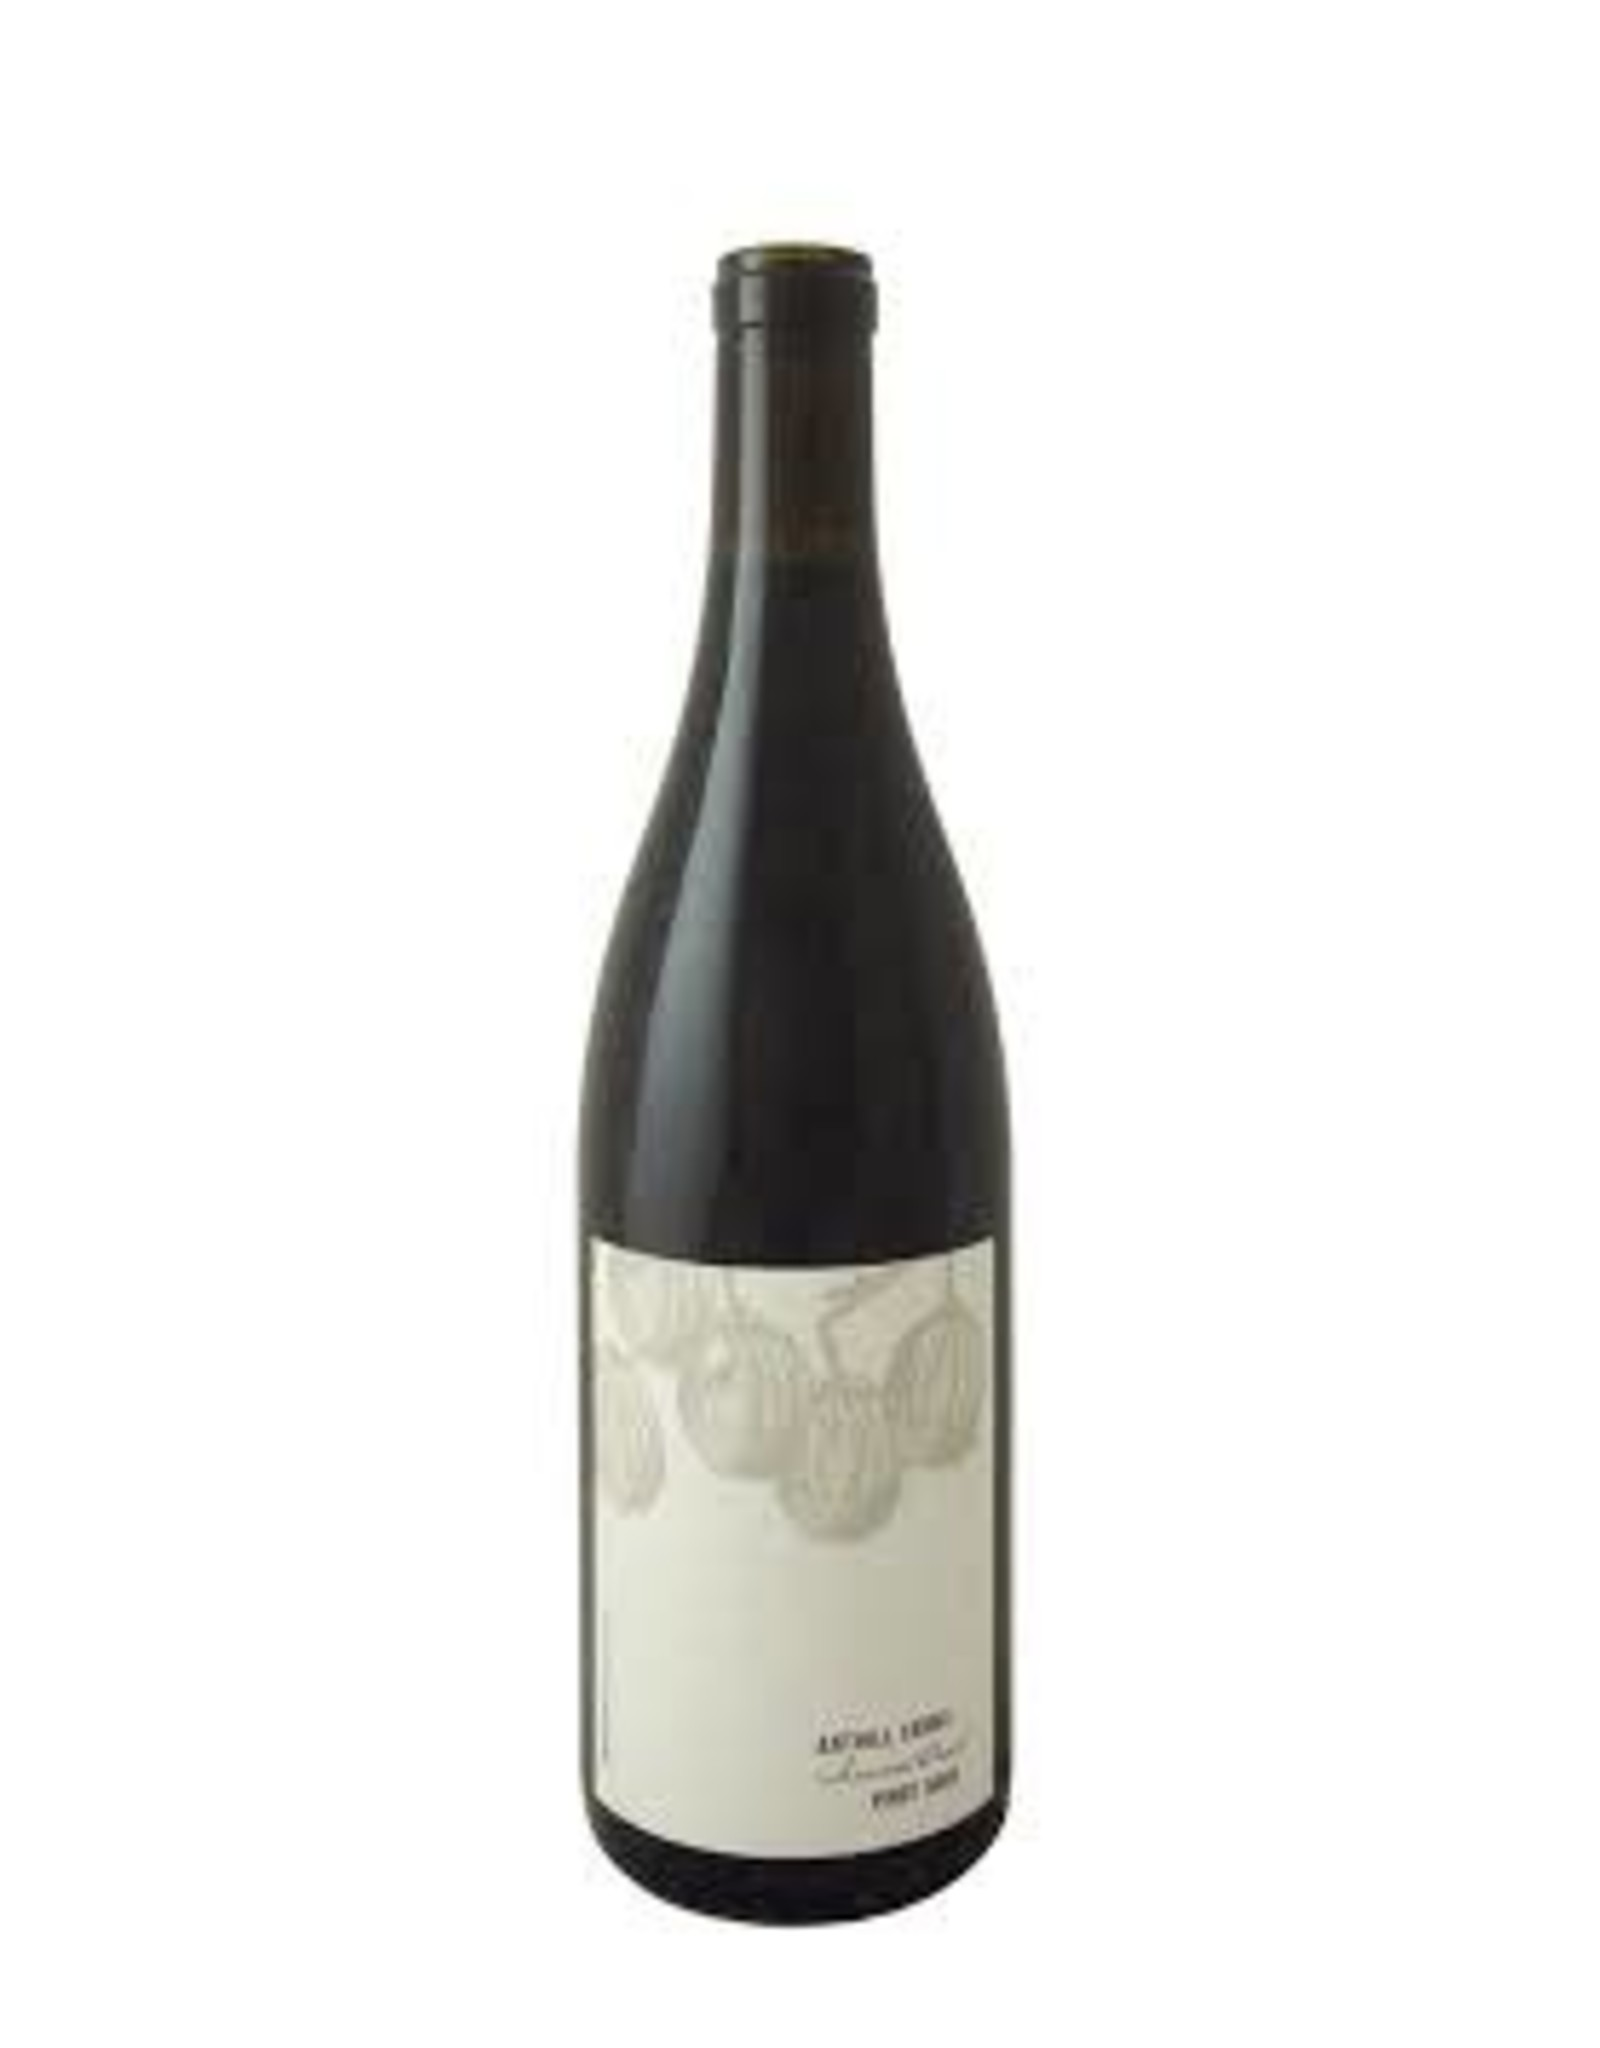 Anthill Farms Anthill Farms Pinot Noir, Sonoma Coast 2019